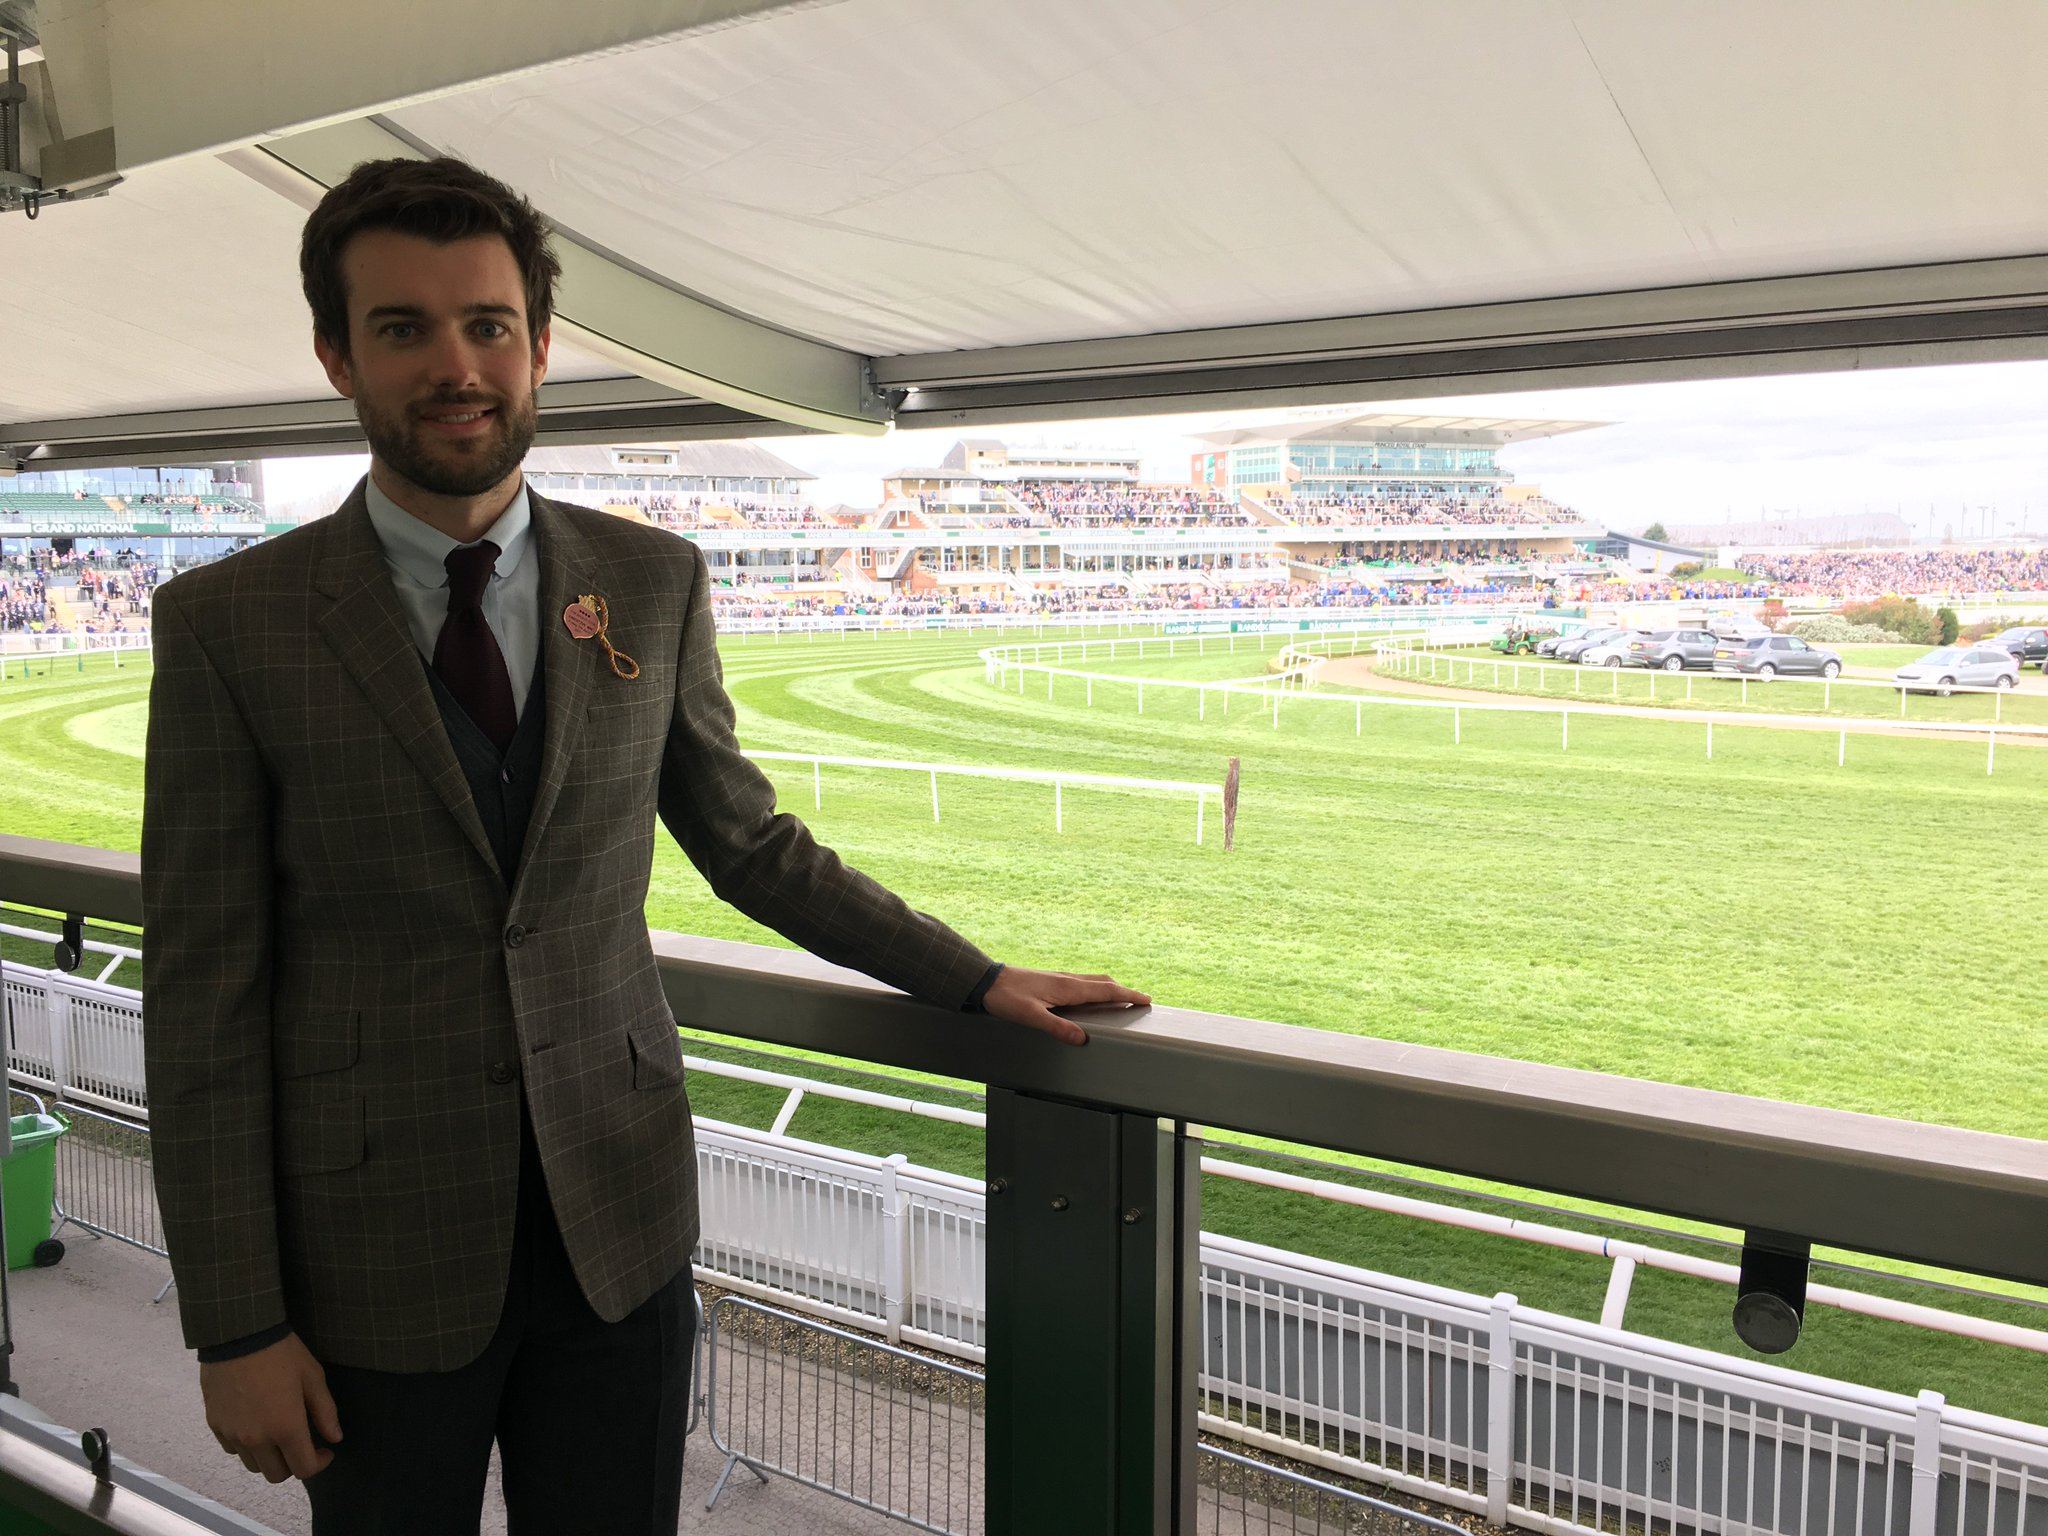 Day at the racing. (I do have friends honest - they're just not in this picture) @TheJockeyClub #grandnational https://t.co/bJX1w77YtD